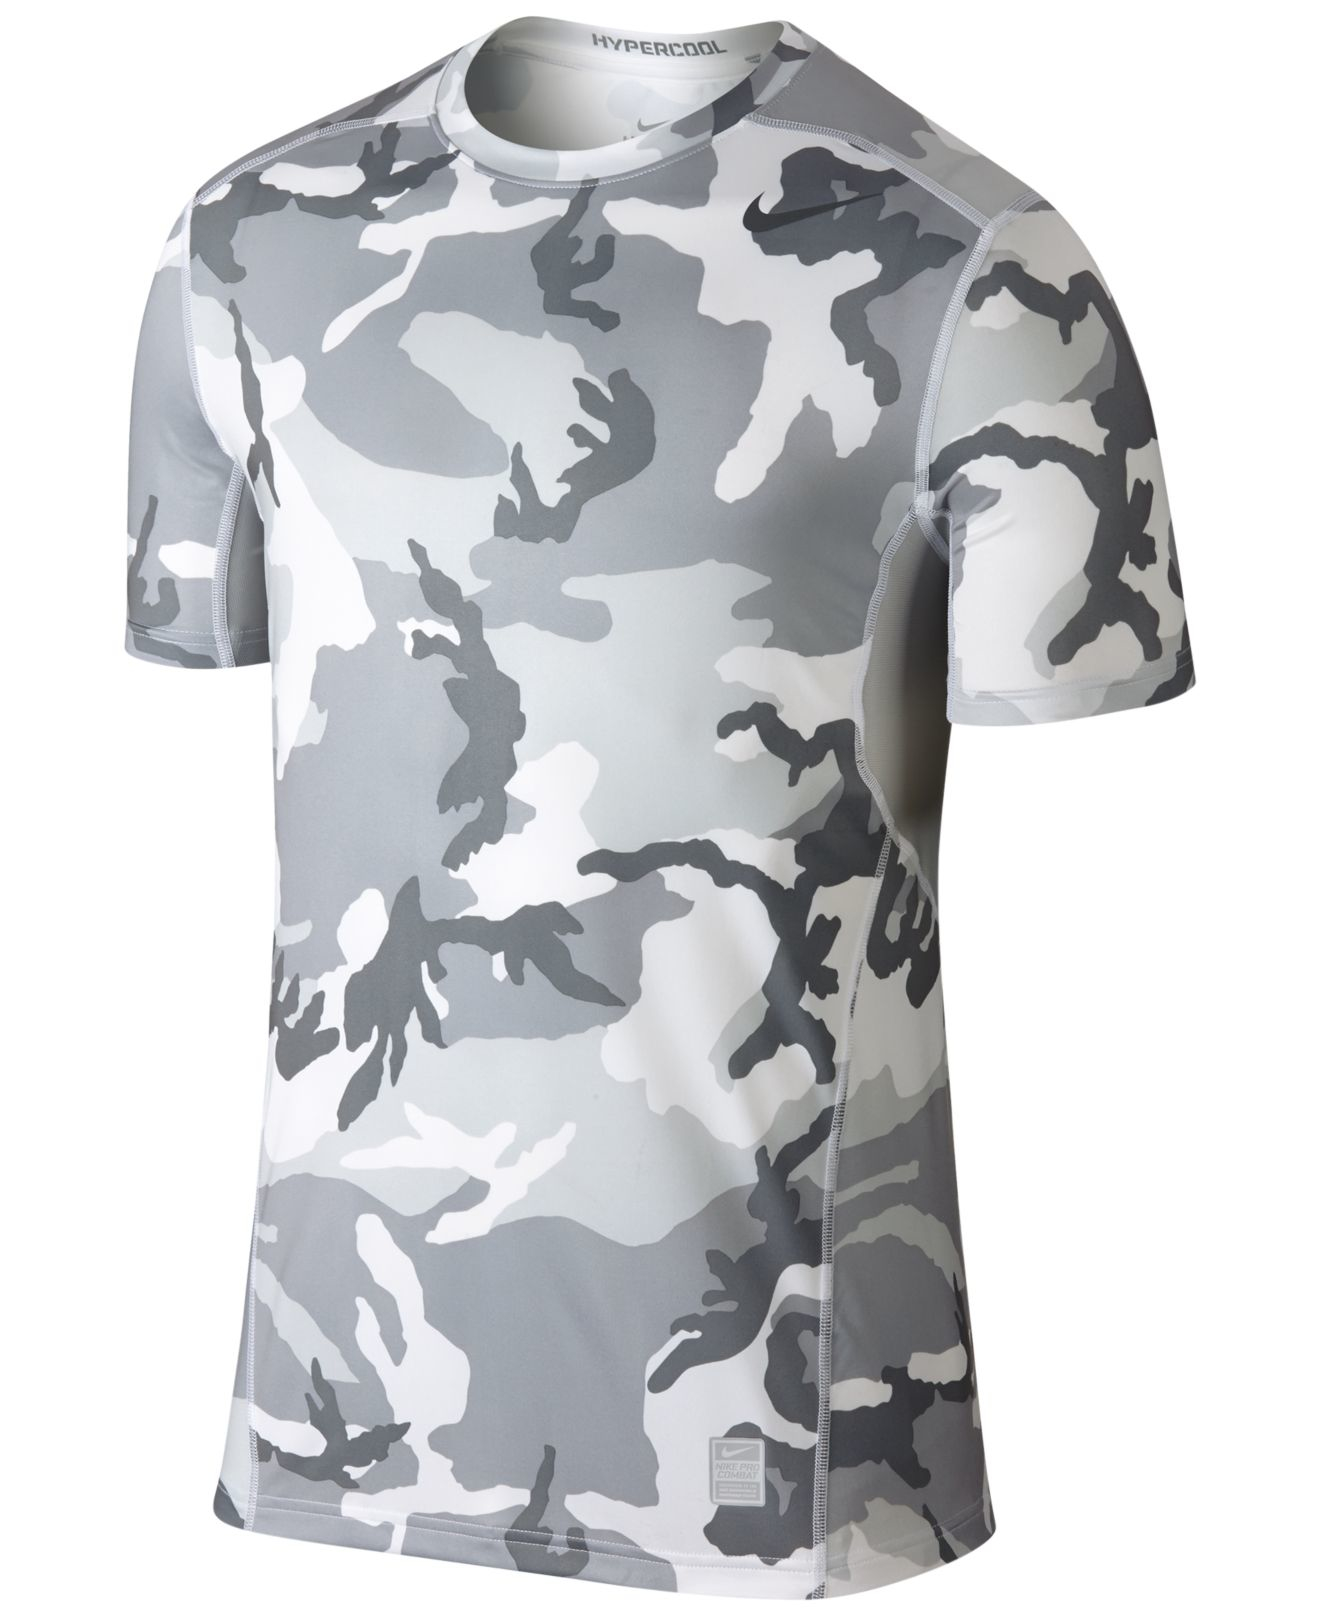 Abolido contrabando minusválido  to9a543 favorite lyst nike hypercool dri fit camo t shirt in gray ...